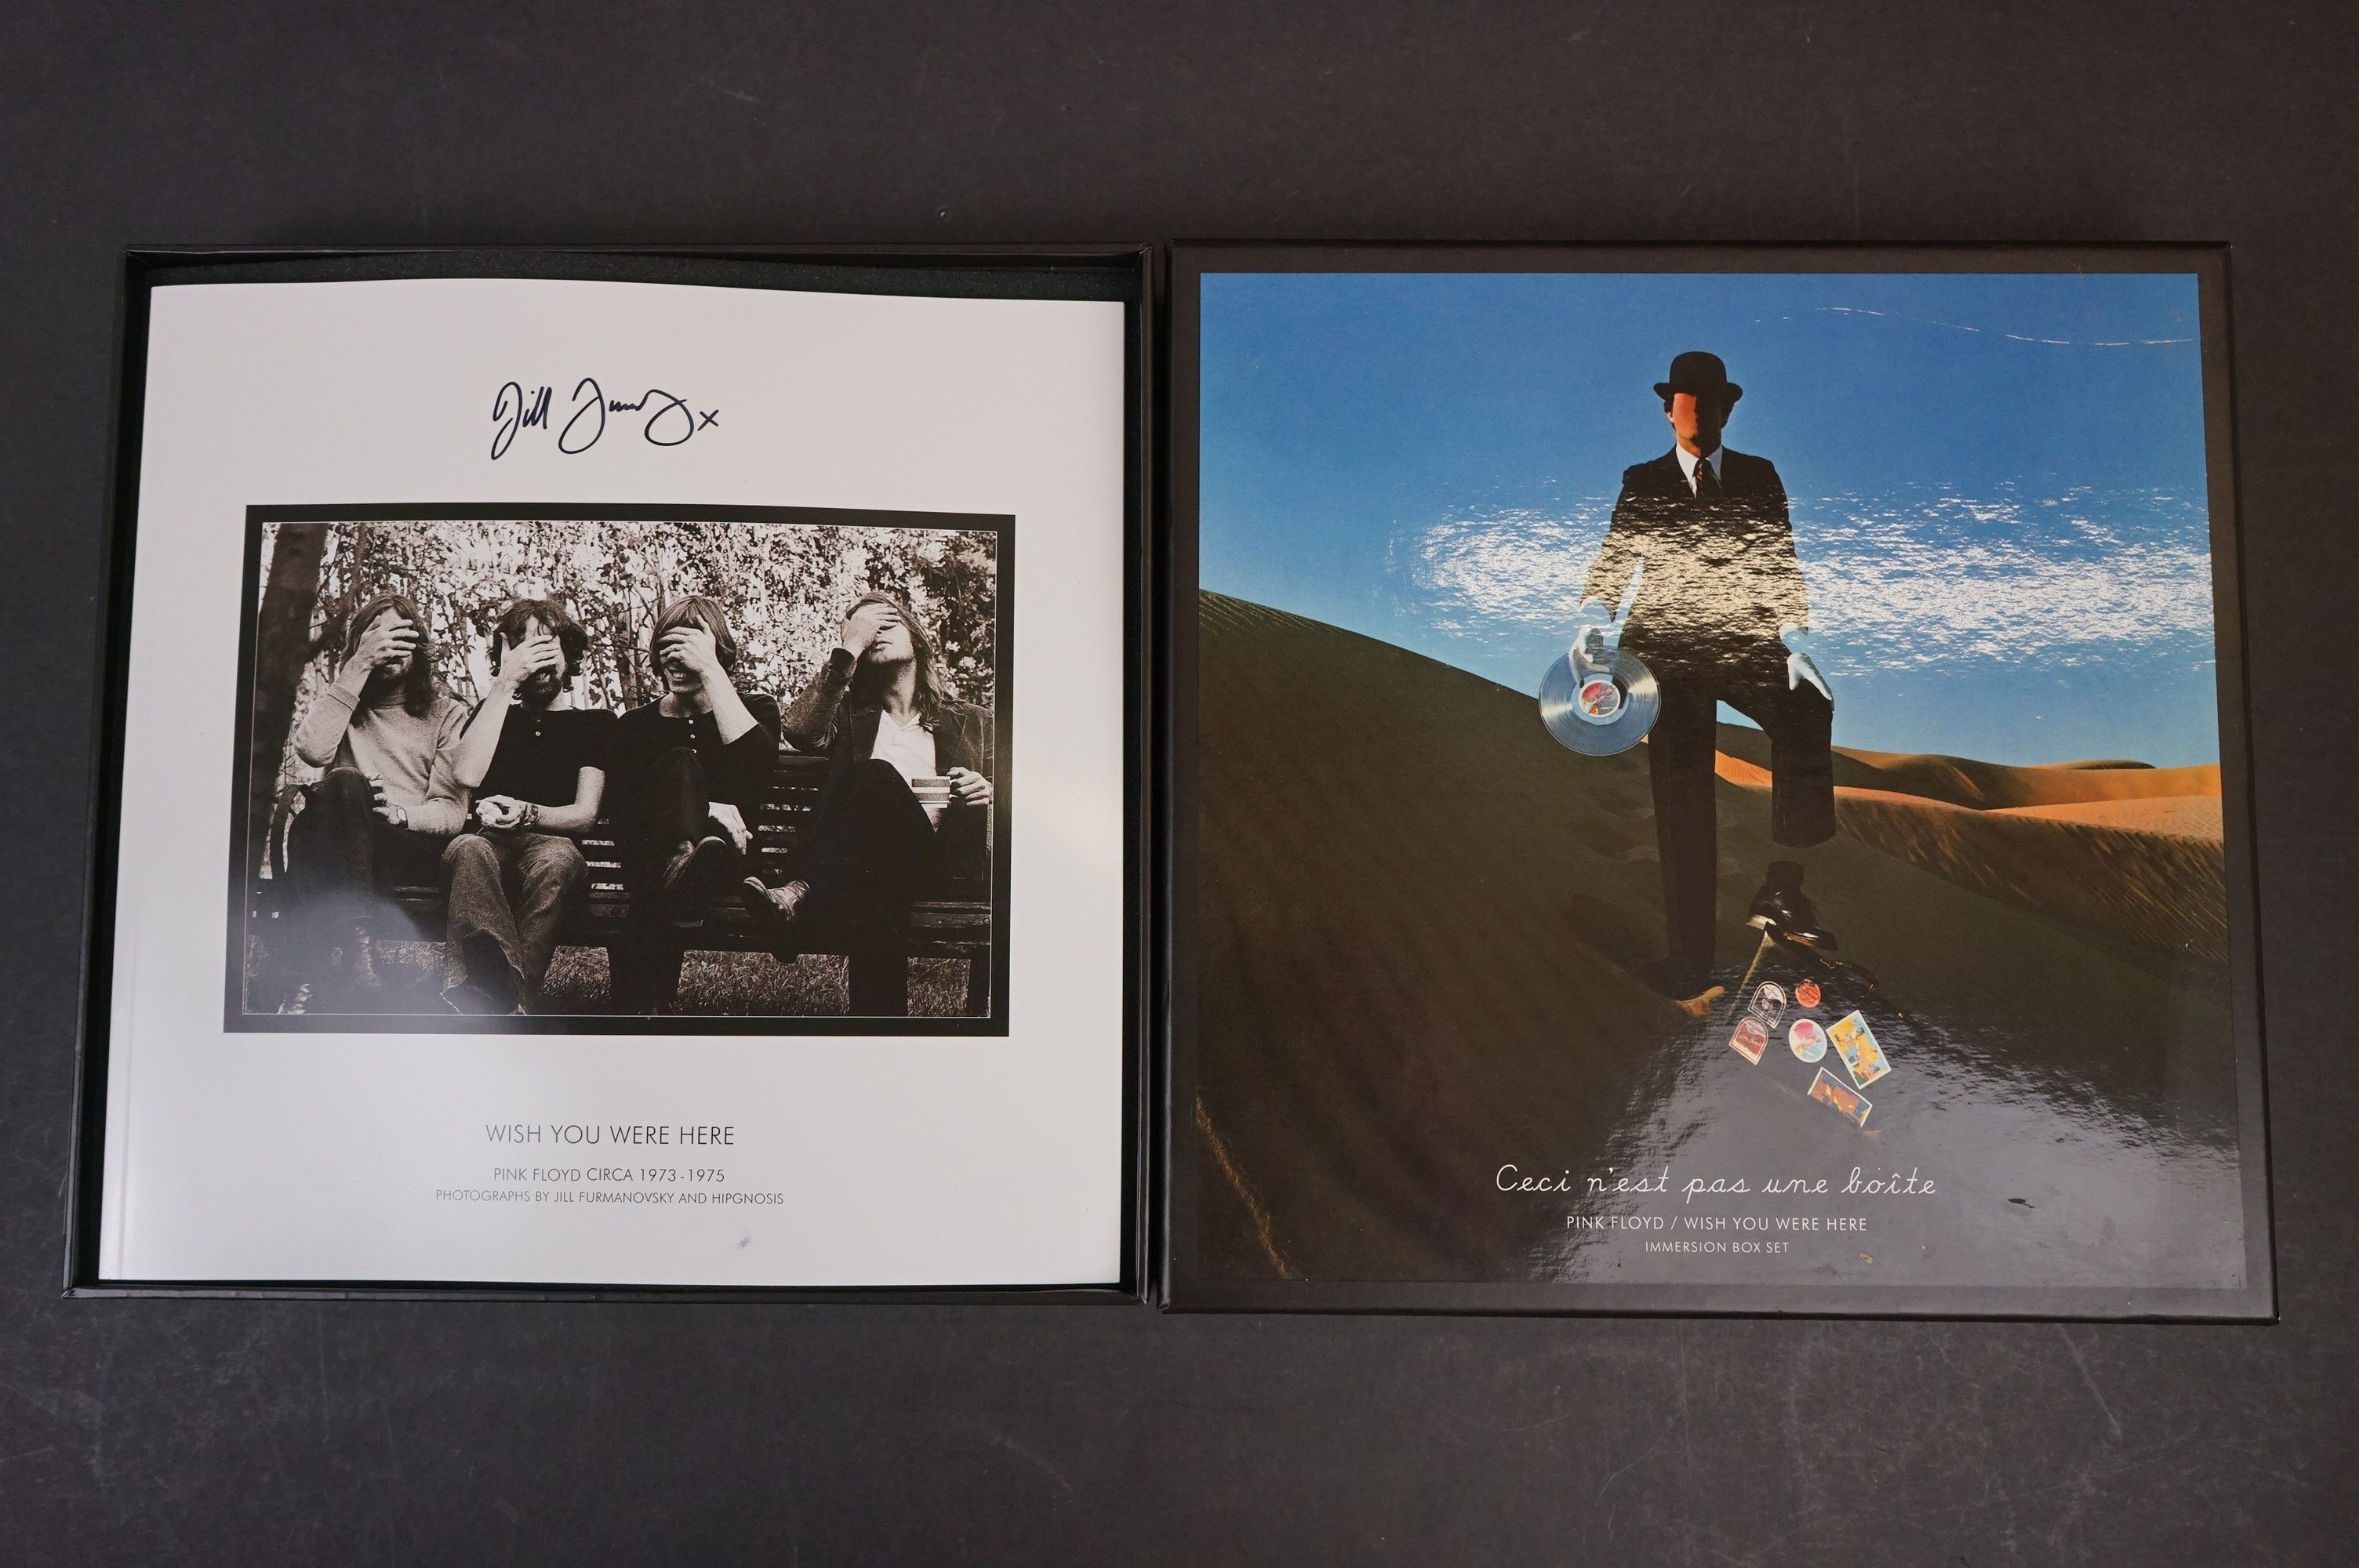 CD / DVD / Bluray - Pink Floyd Wish You Were Here 5 disc box set ex - Image 2 of 13